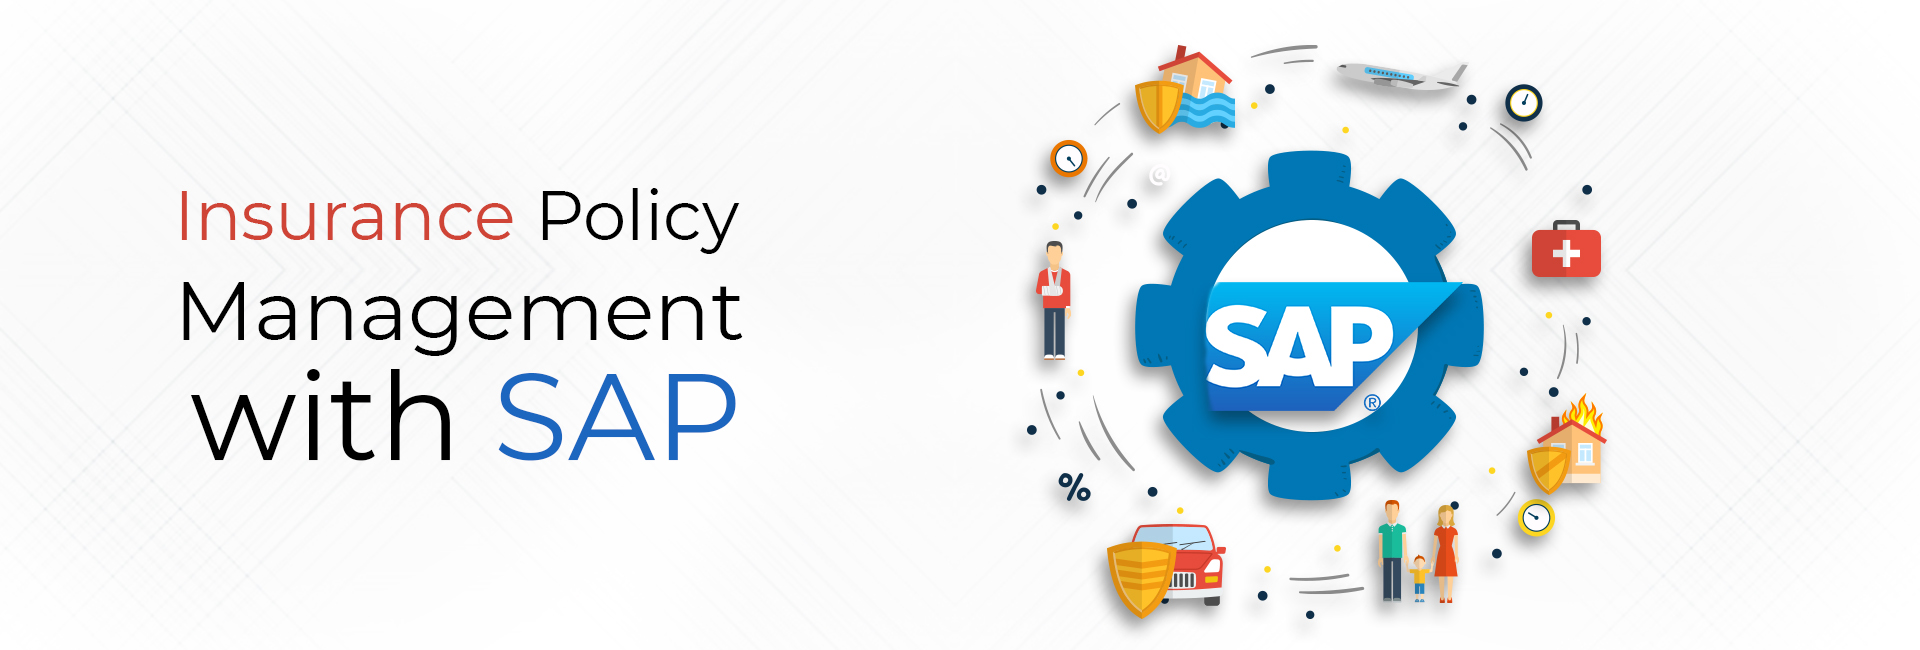 Insurance Policy Management with SAP